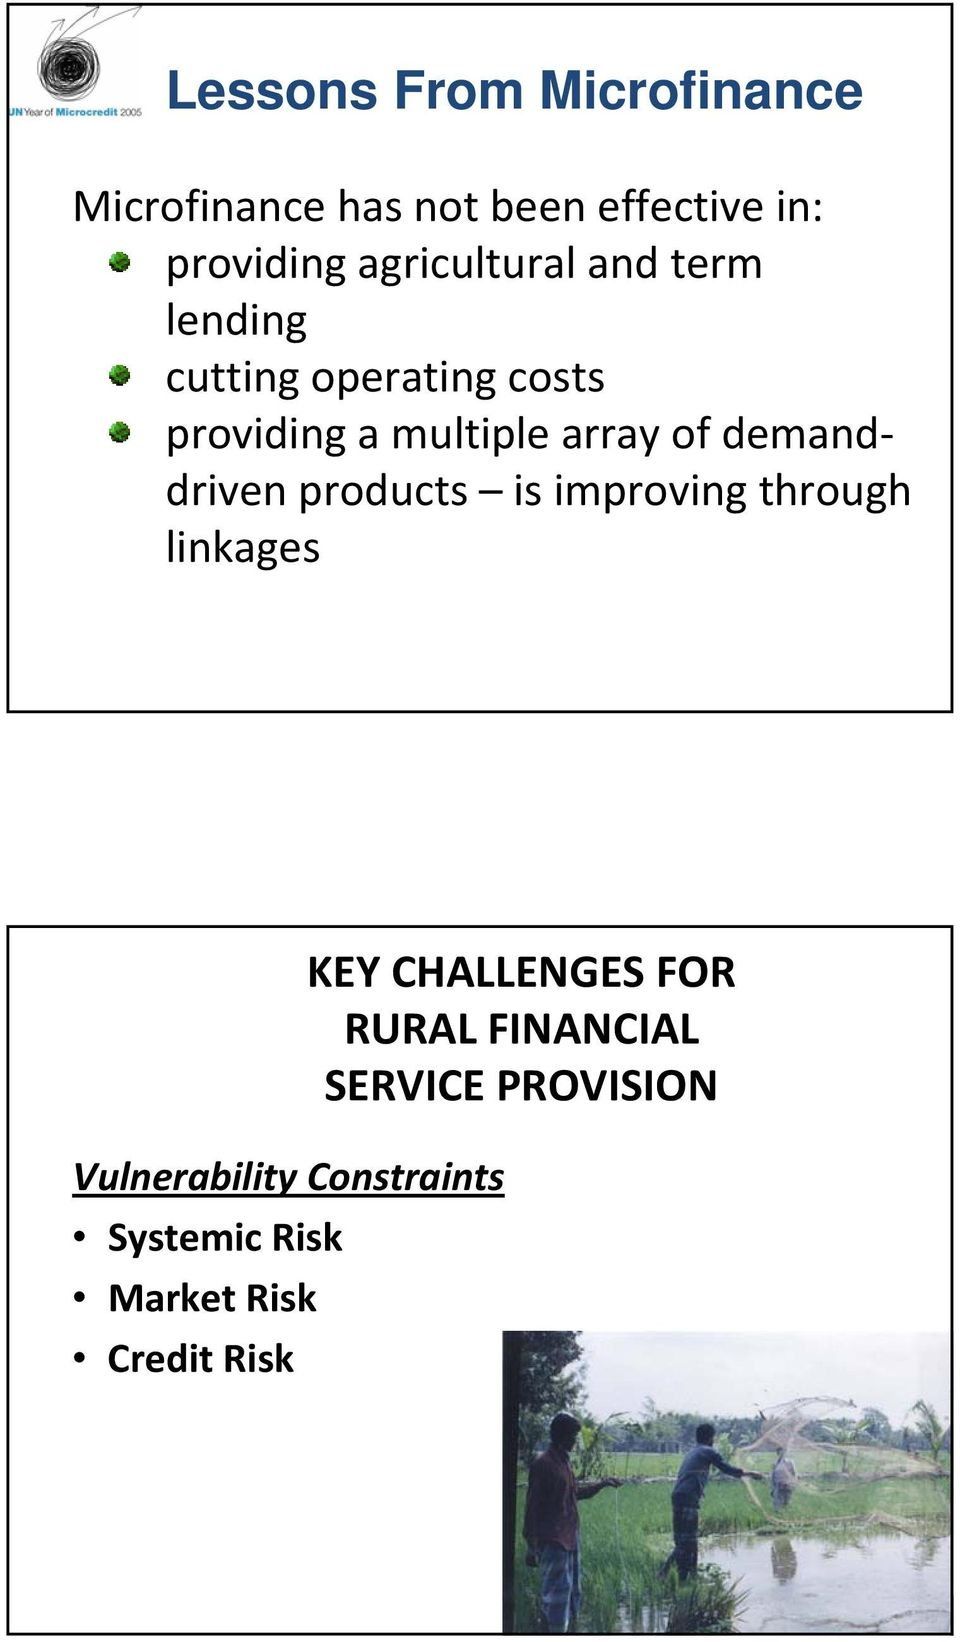 of demanddriven products is improving through linkages Vulnerability Constraints